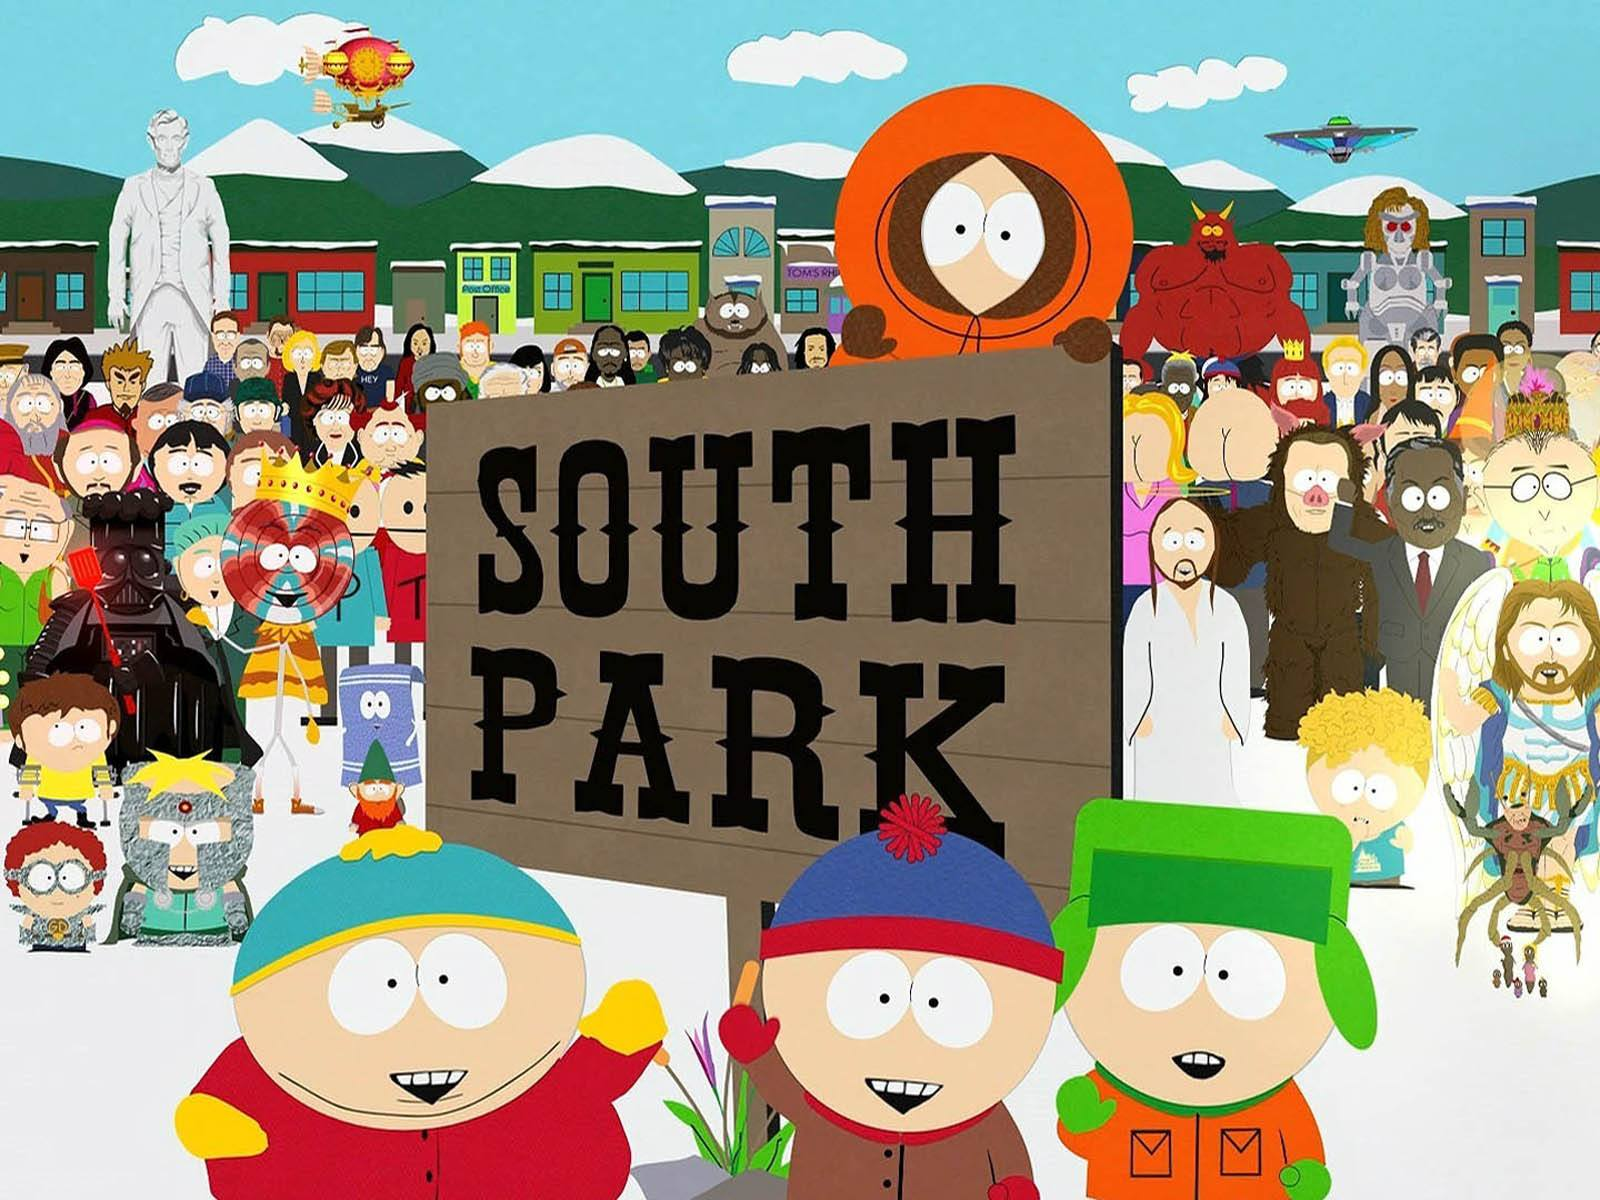 Cartoon characters in the snow surround a sign reading 'South Park'